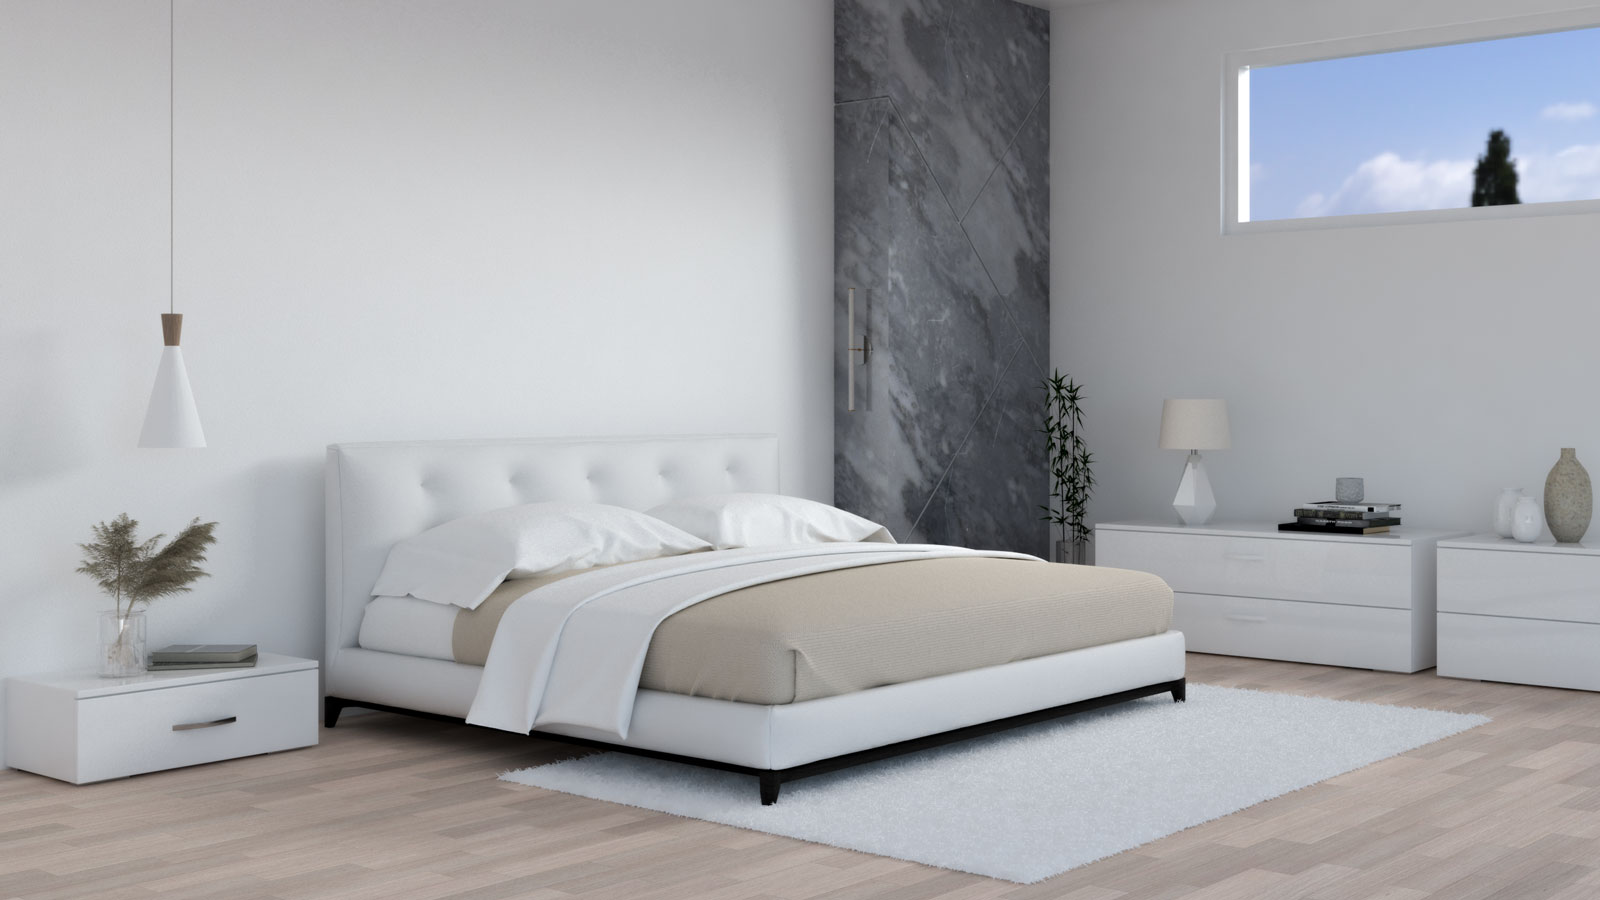 White and beige bedding in bedroom with white furniture